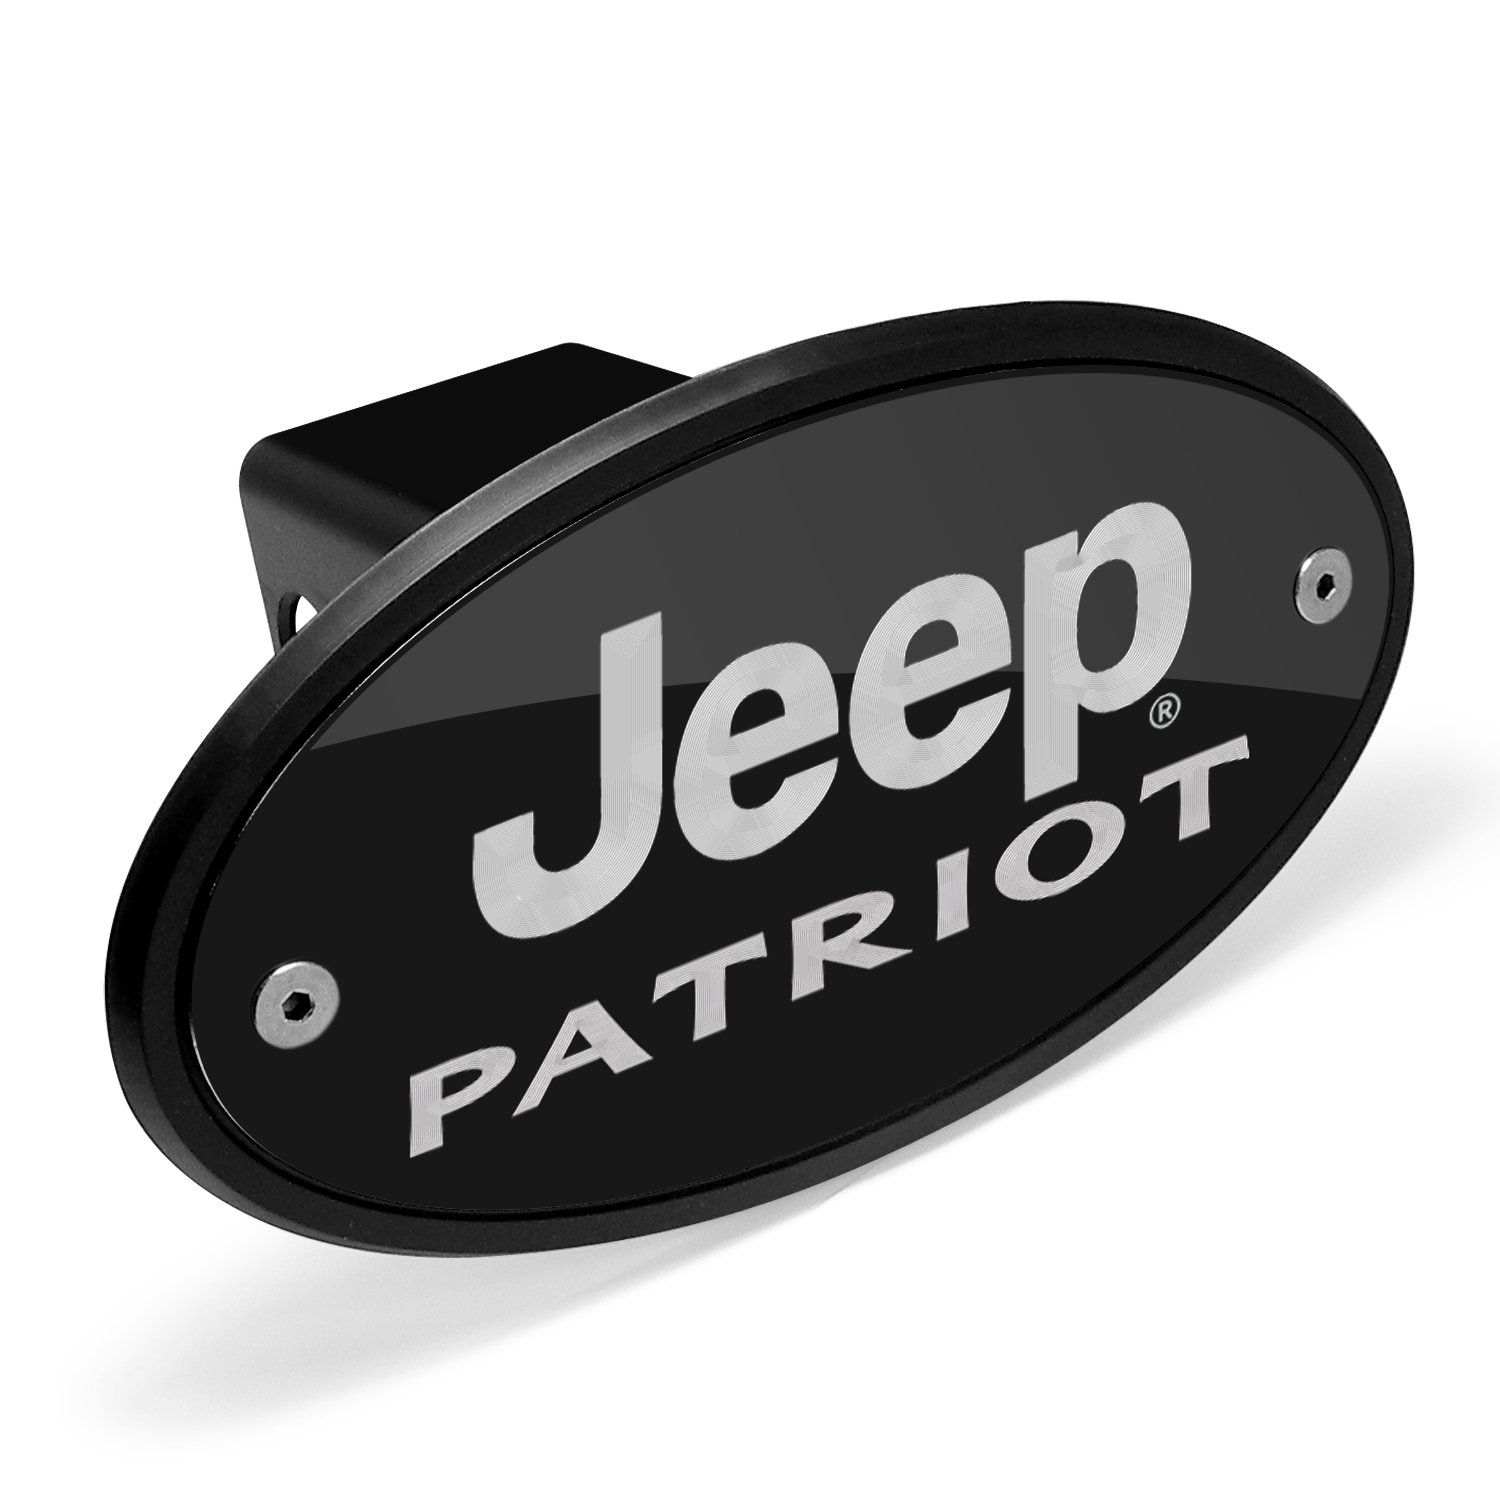 Jeep Patriot Black Metal Plate 2 inch Tow Hitch Cover Universal Brass